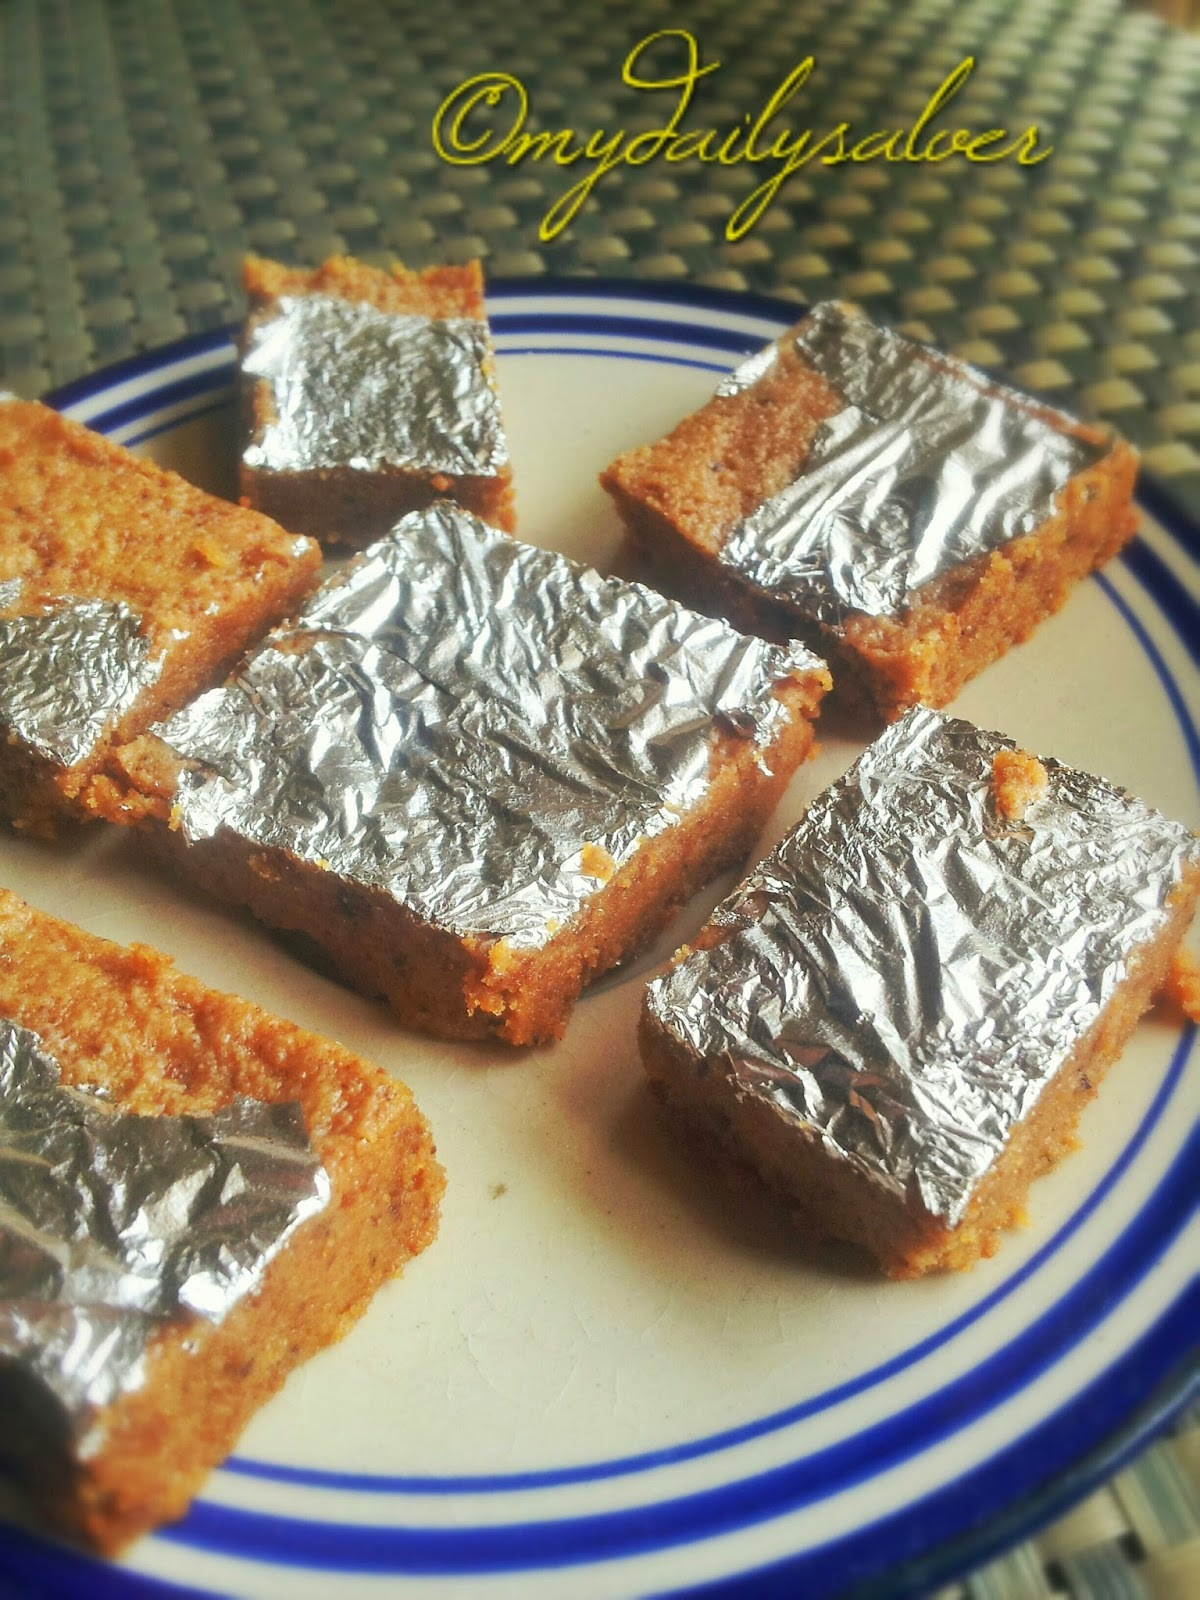 KHOYA BARFI RECIPE - Made from leftover khoya after making ghee.